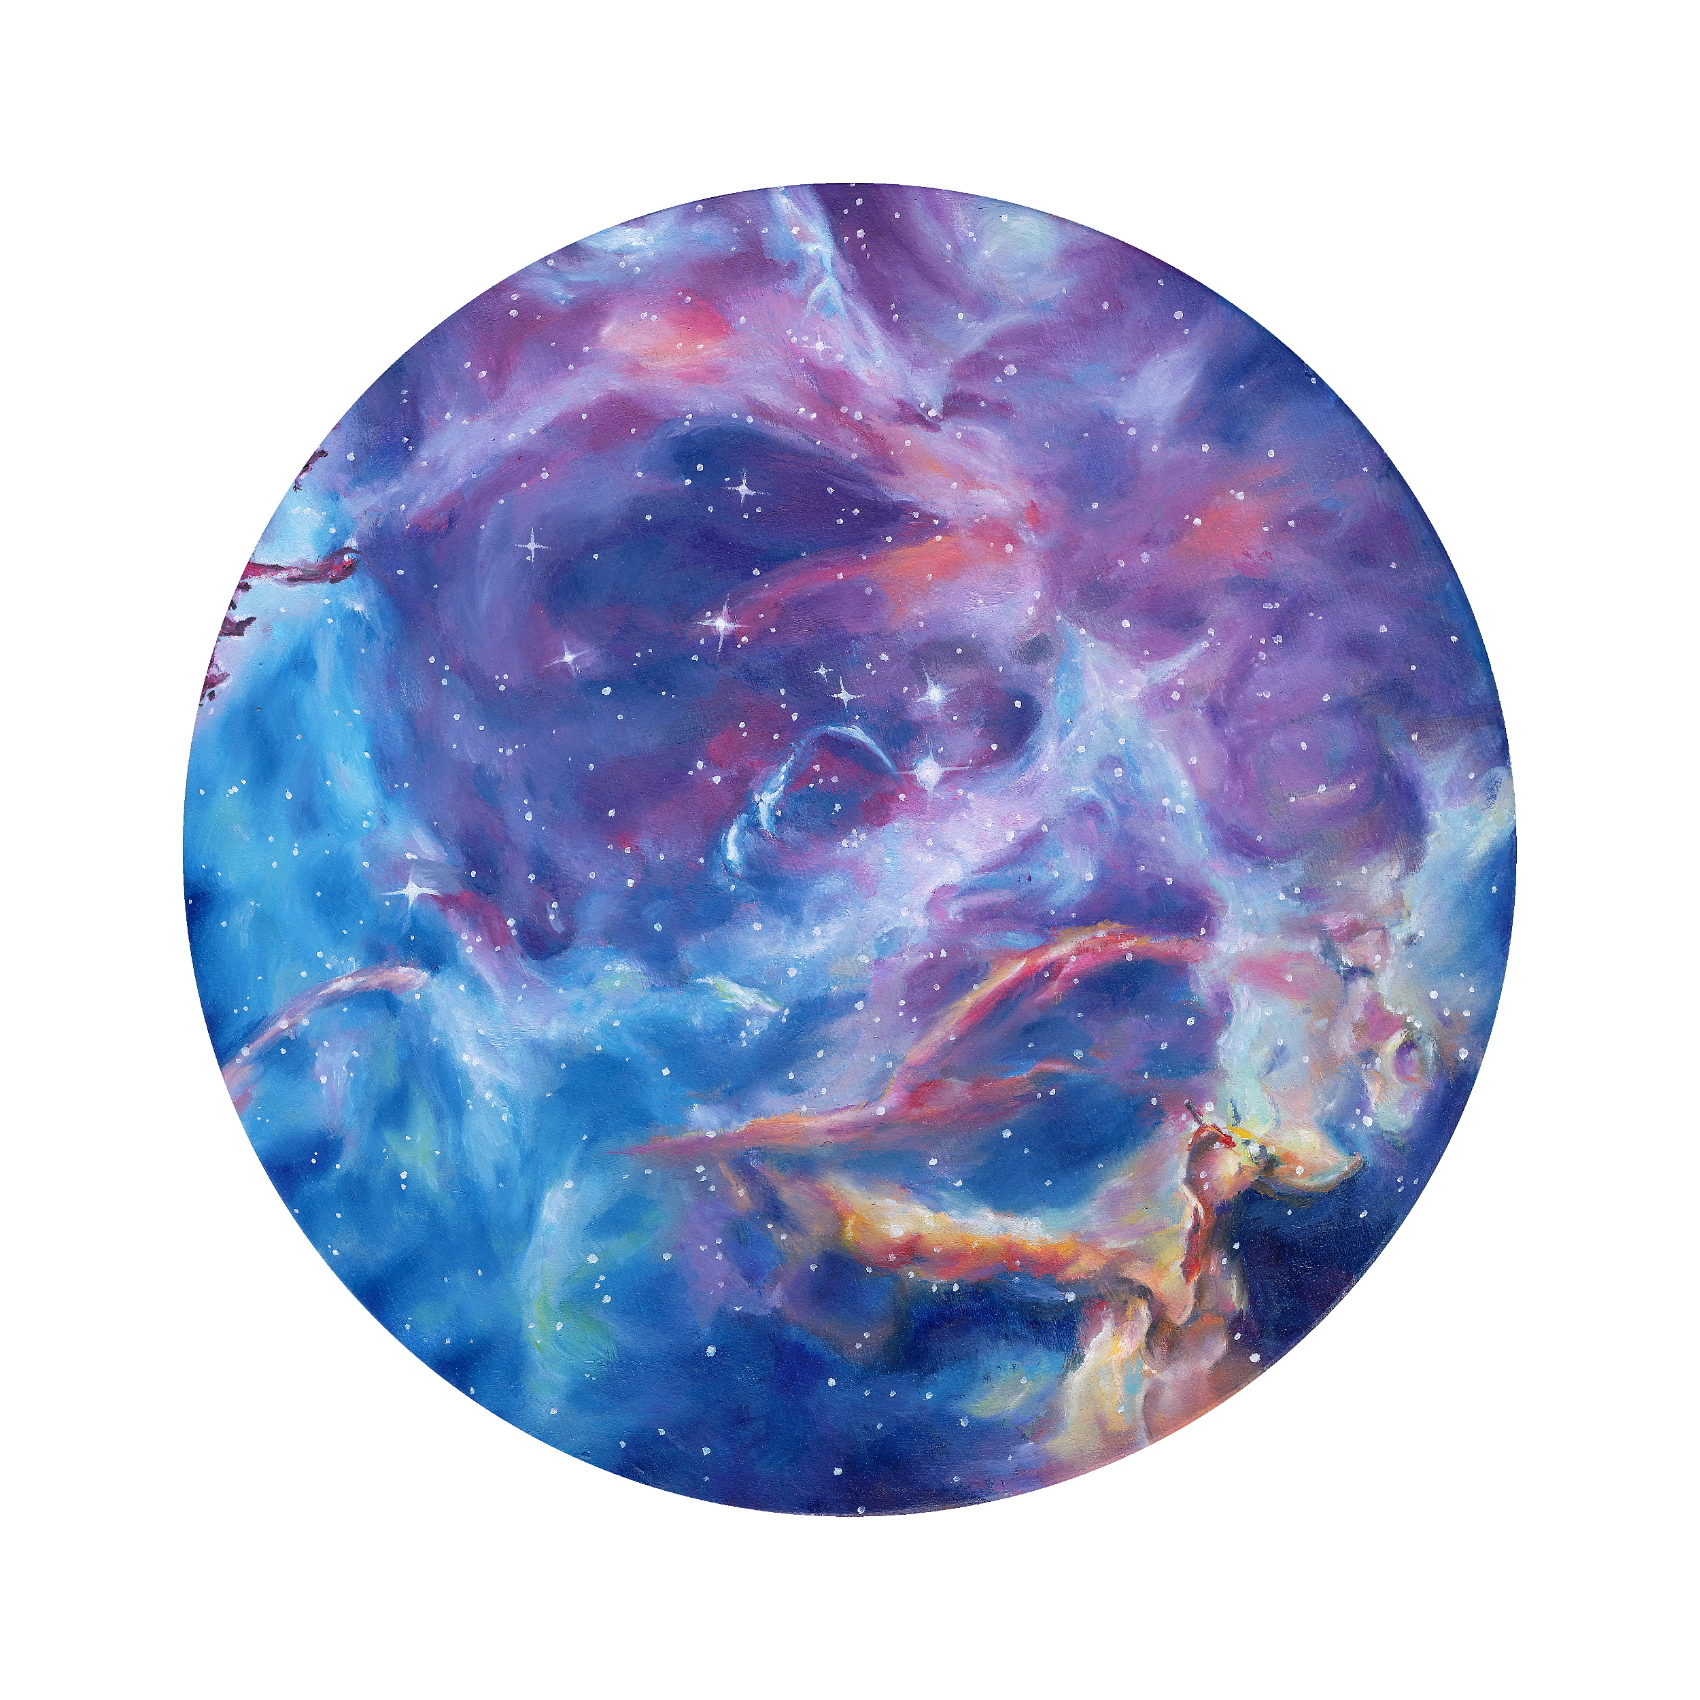 Rosette Nebula (ITEM NO: 002)  Print Size:8x8 inches  $12.50 Wholesale at 50% off  $25 RRP